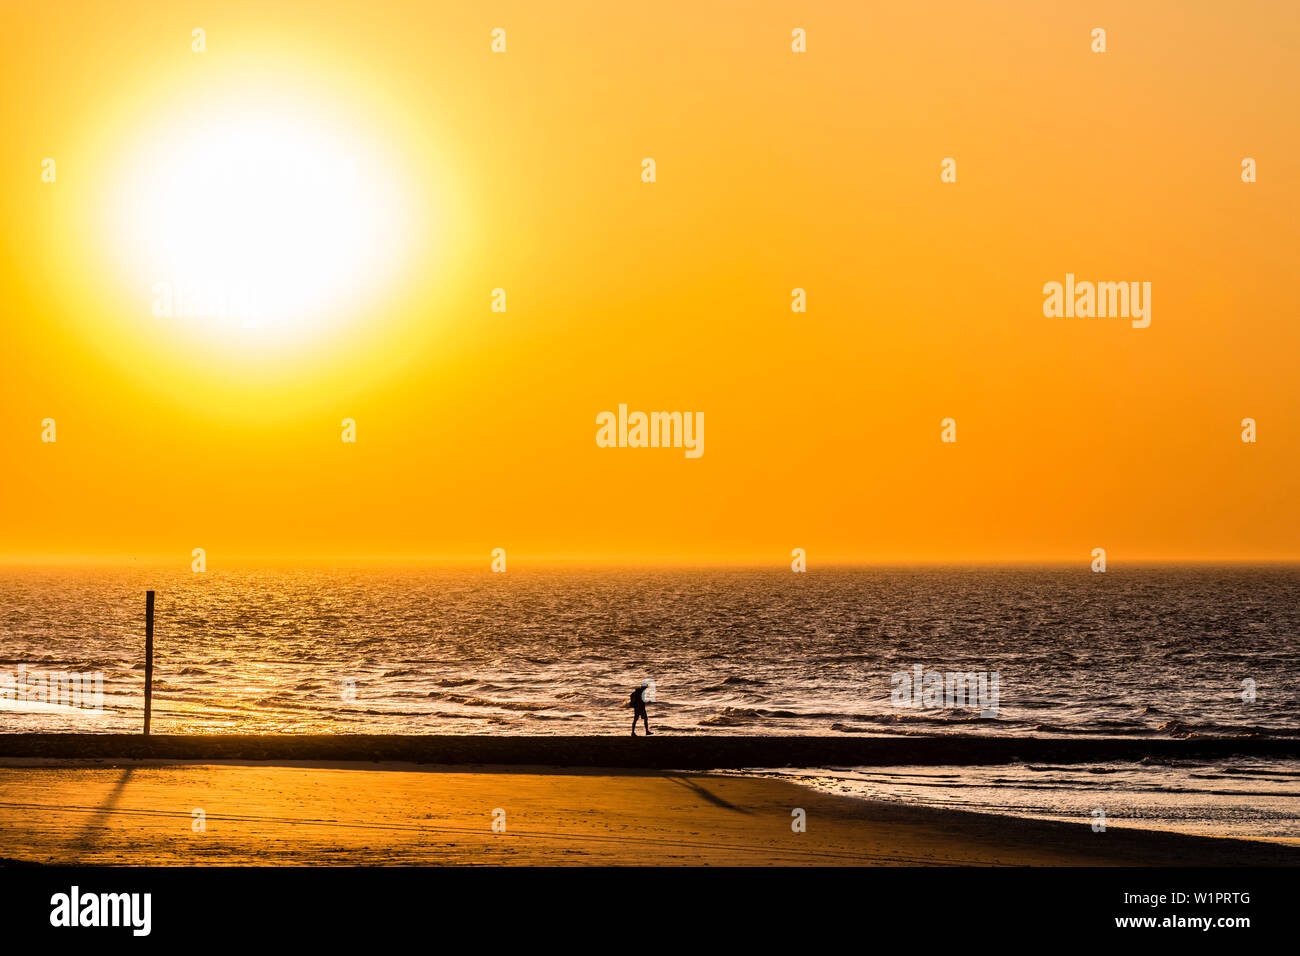 Stroller on the beach at sunset, Wangerooge, East Frisia, Lower Saxony, Germany Stock Photo